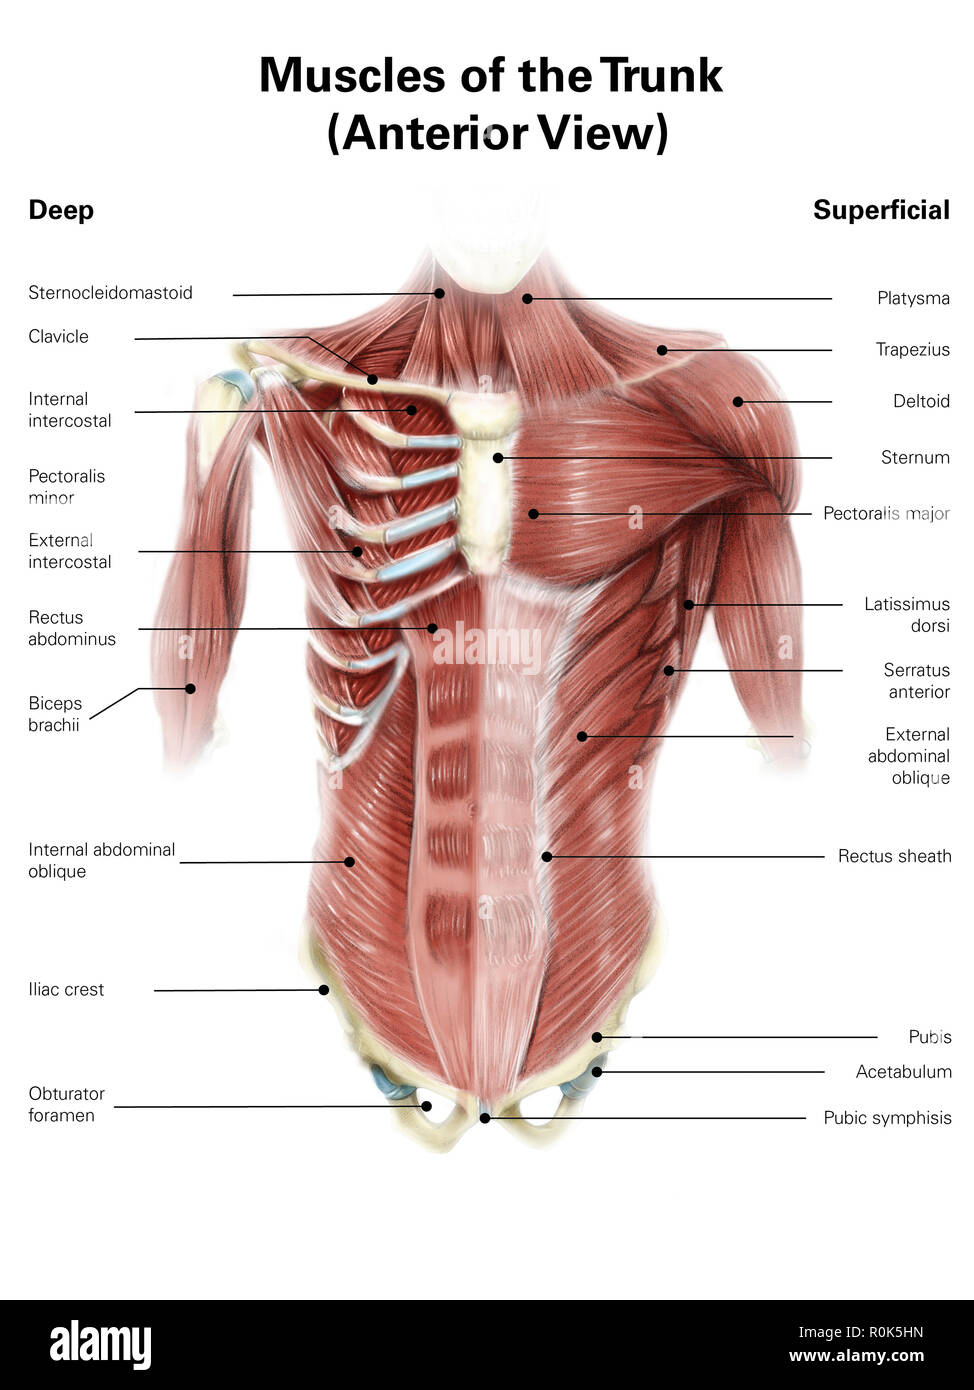 Tremendous Digital Illustration Of Muscles Of The Human Torso Anterior View Wiring Cloud Oideiuggs Outletorg